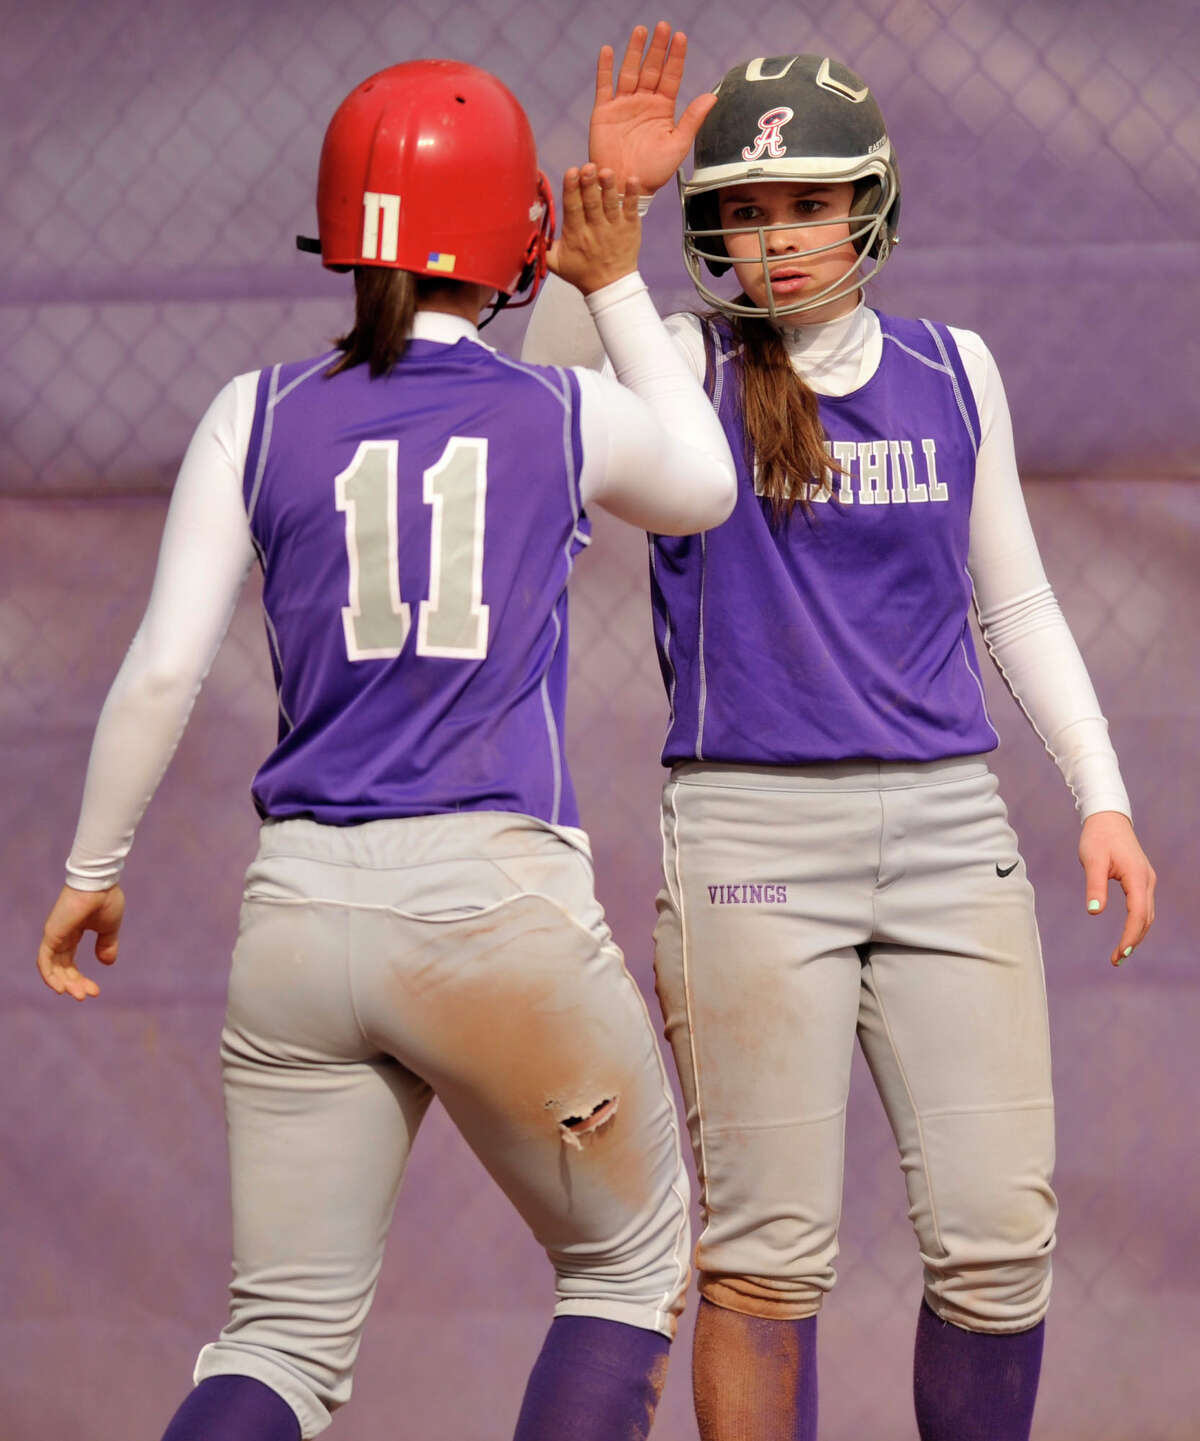 Westhill's Kate Brainard, left, and Morgan Kurtz celebrate both scoring against New Canaan at Westhill High School on Tuesday, May 14, 2013. Westhill won, 4-3.